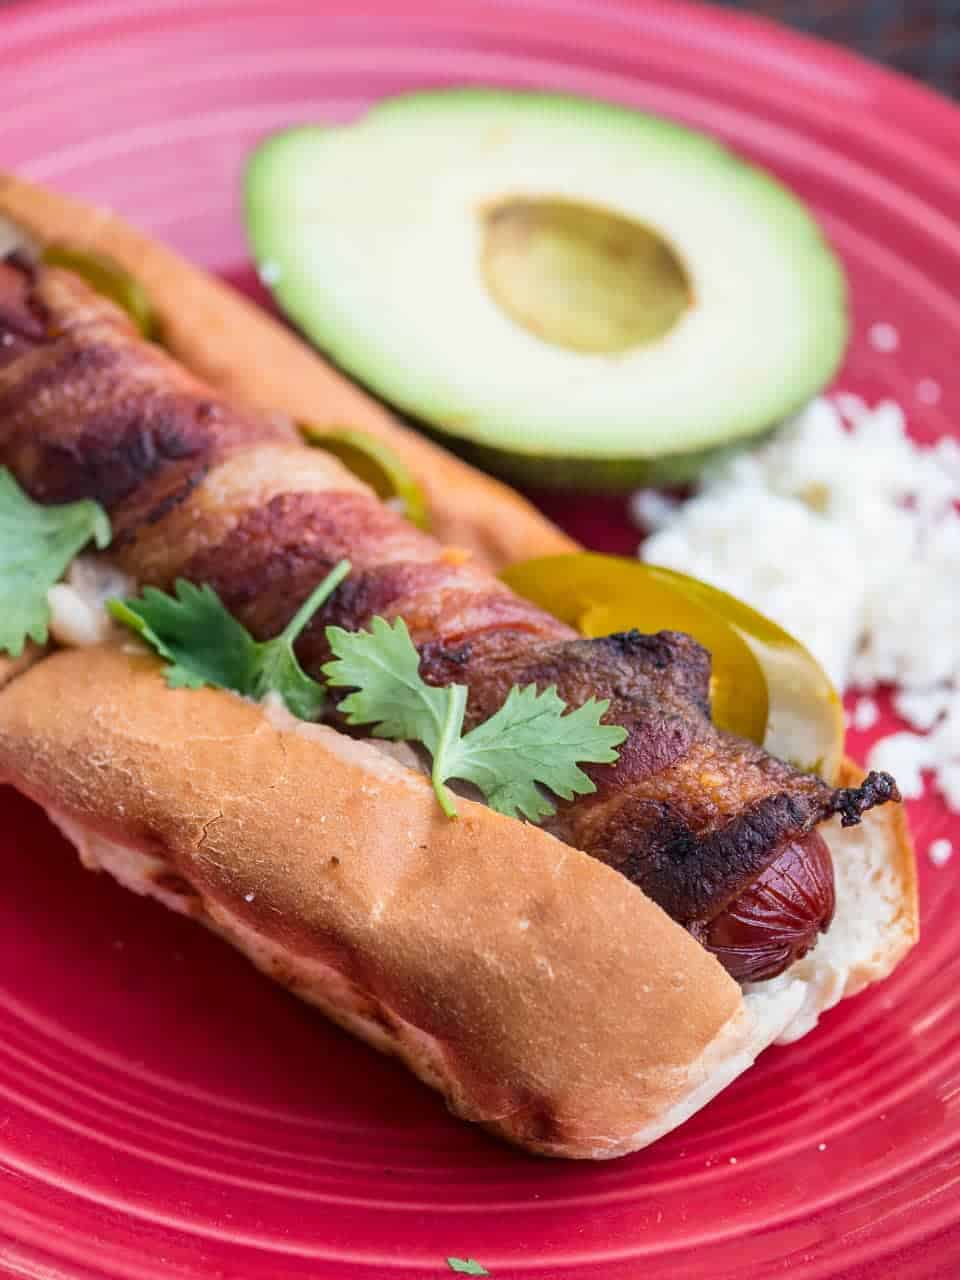 Grilled Mexican Hot Dogs - DadCooksDinner